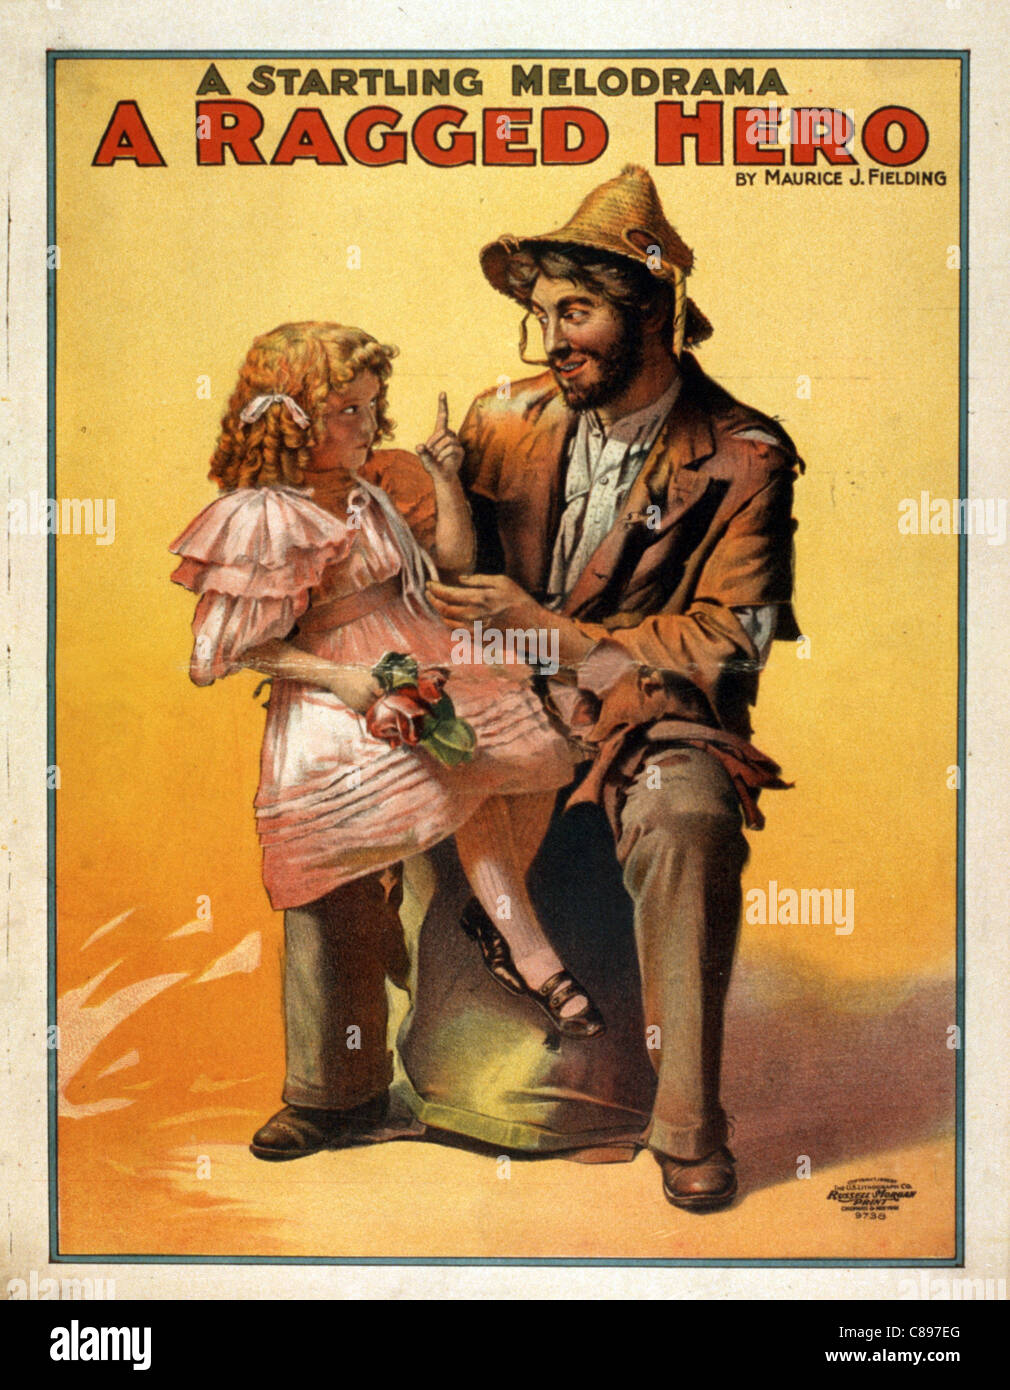 A startling melodrama, A ragged hero poster - Stock Image